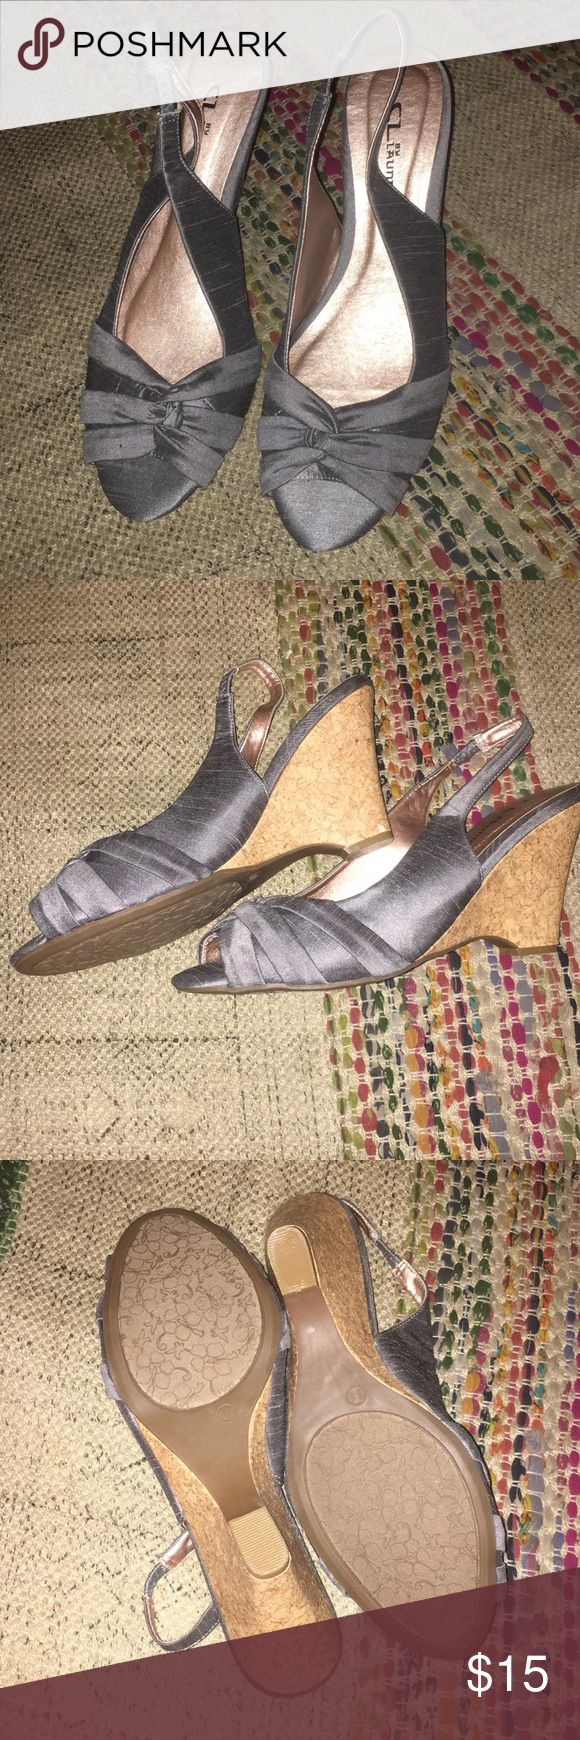 Silver/gray satiny wedge heels. Never worn Never worn beautiful gray/silver wedge heels 4 inch wedge, incredibly comfortable, great for holiday parties and weddings Chinese Laundry Shoes Wedges